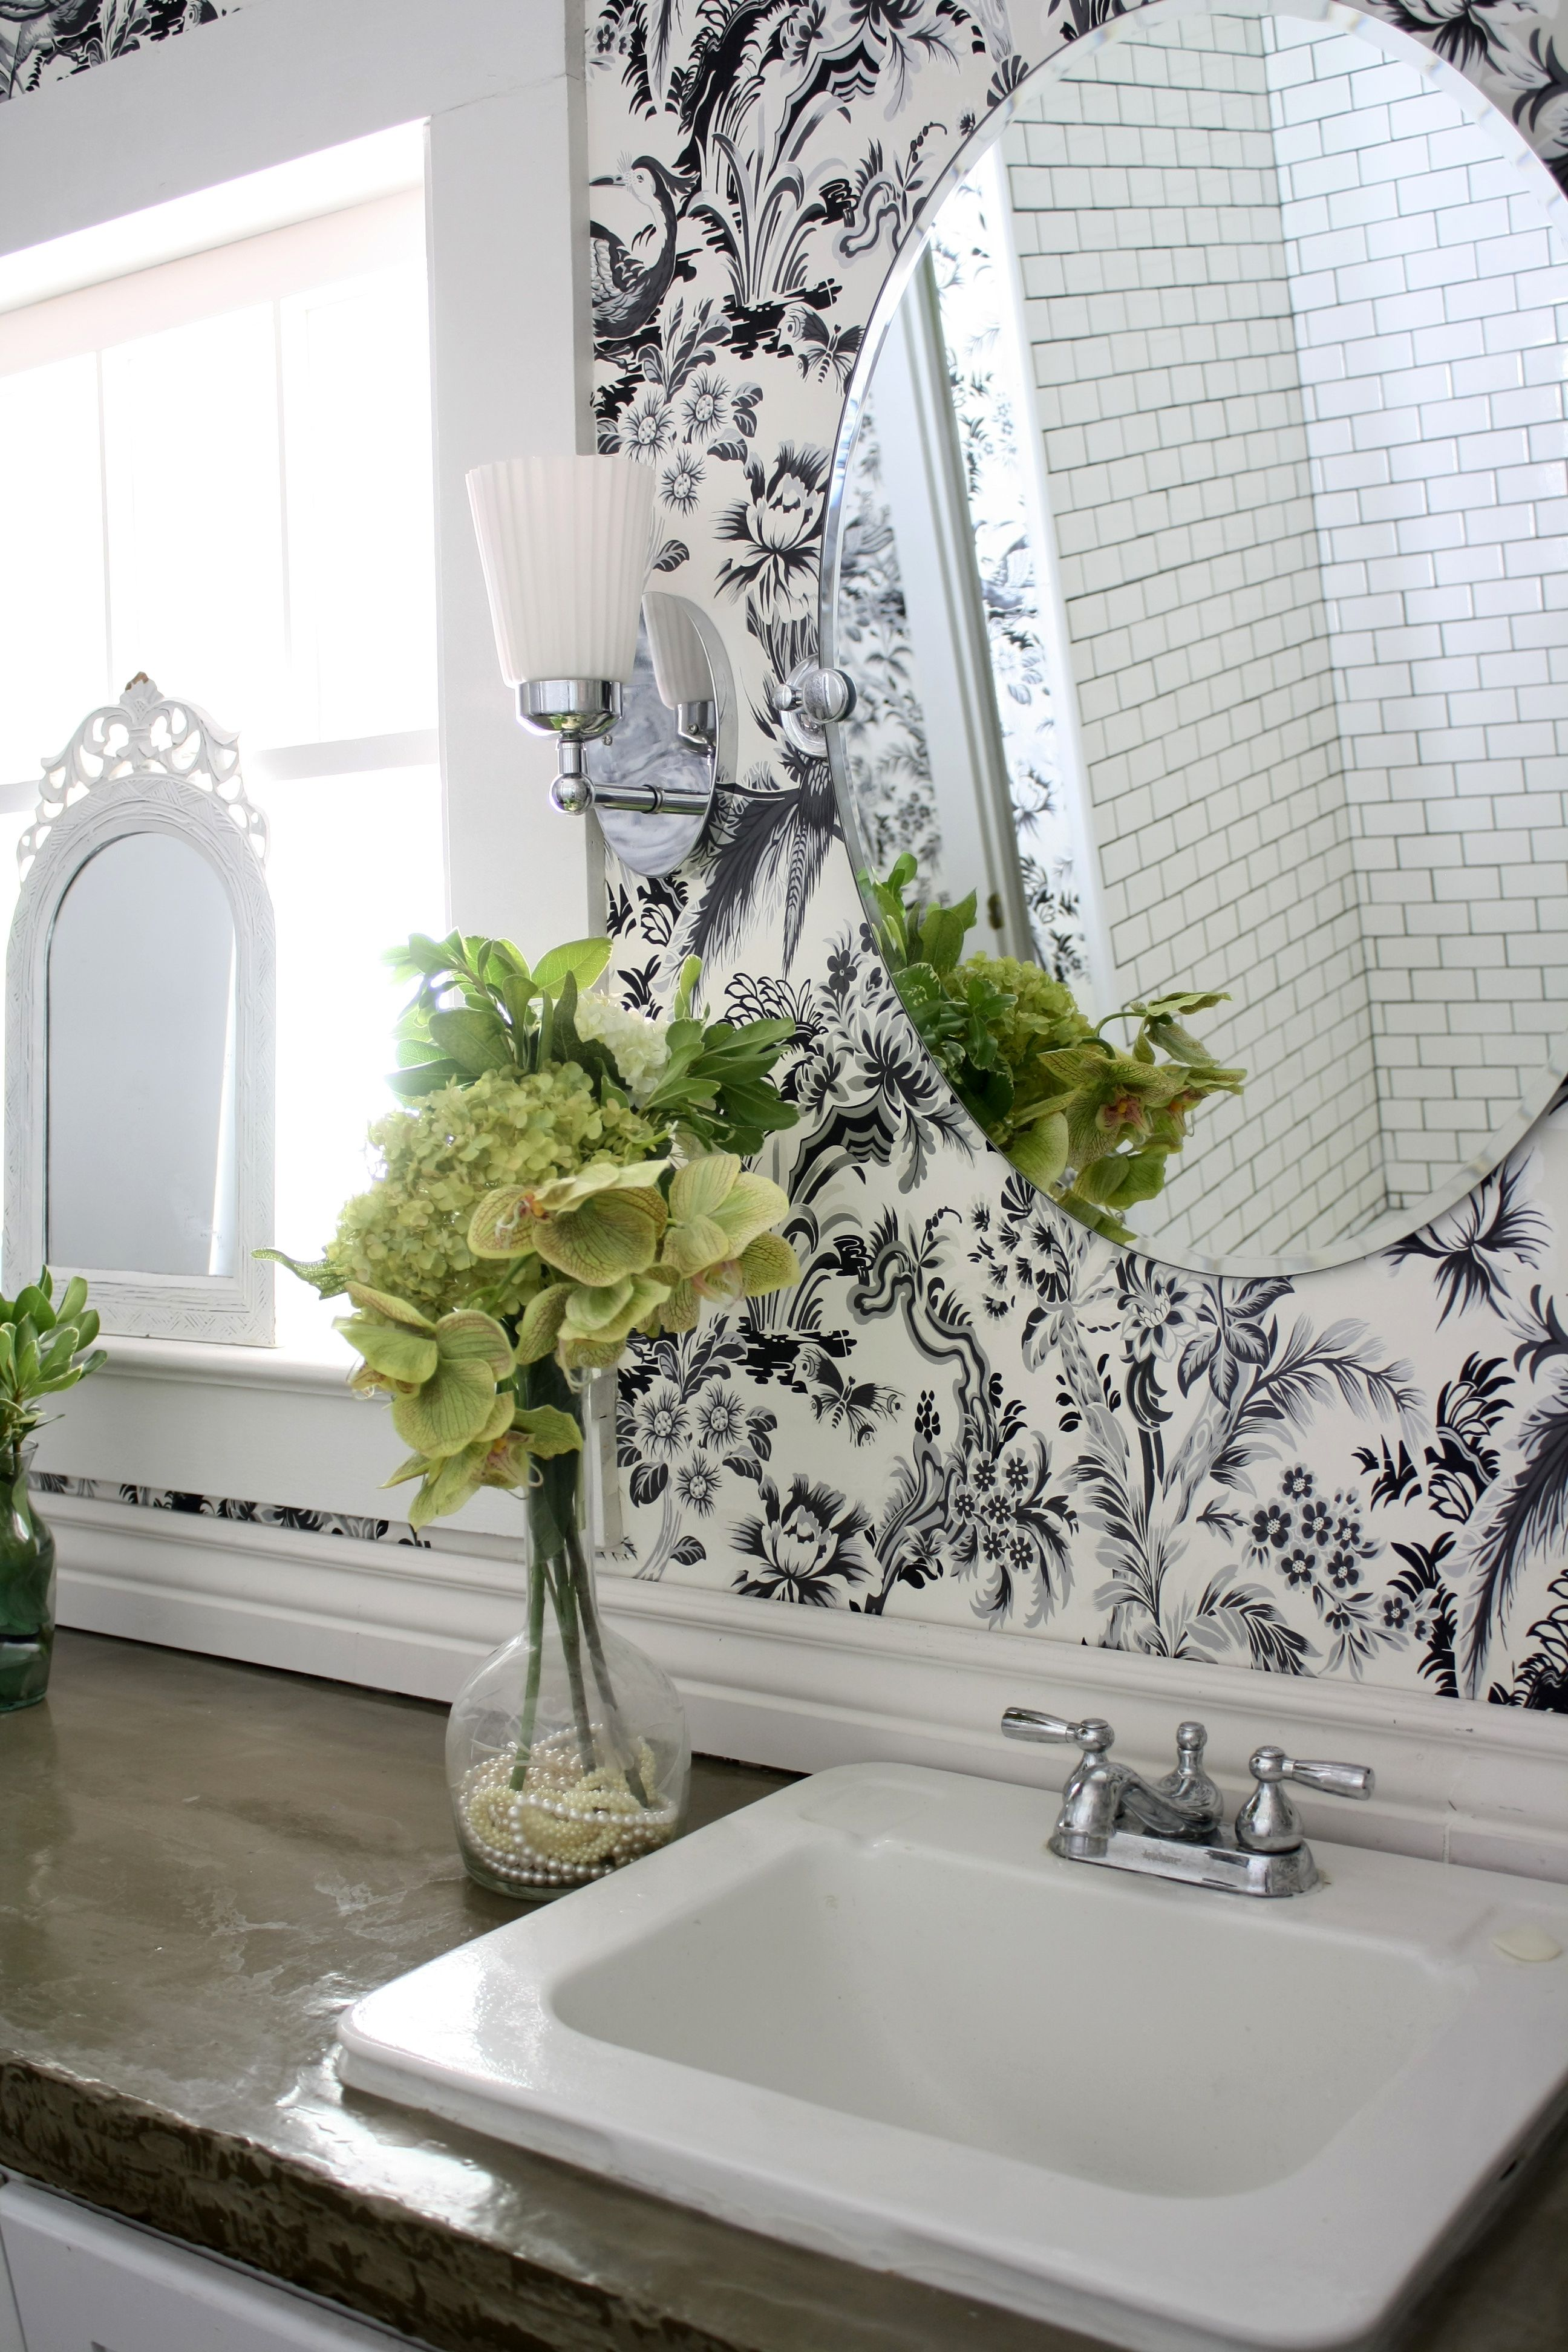 Poured Concrete Countertops In The Bathroom With Graphic Bird Flower Wallpaper Resurfaced Bathroo Marble Wallpaper Phone Flower Wallpaper Bathroom Wallpaper